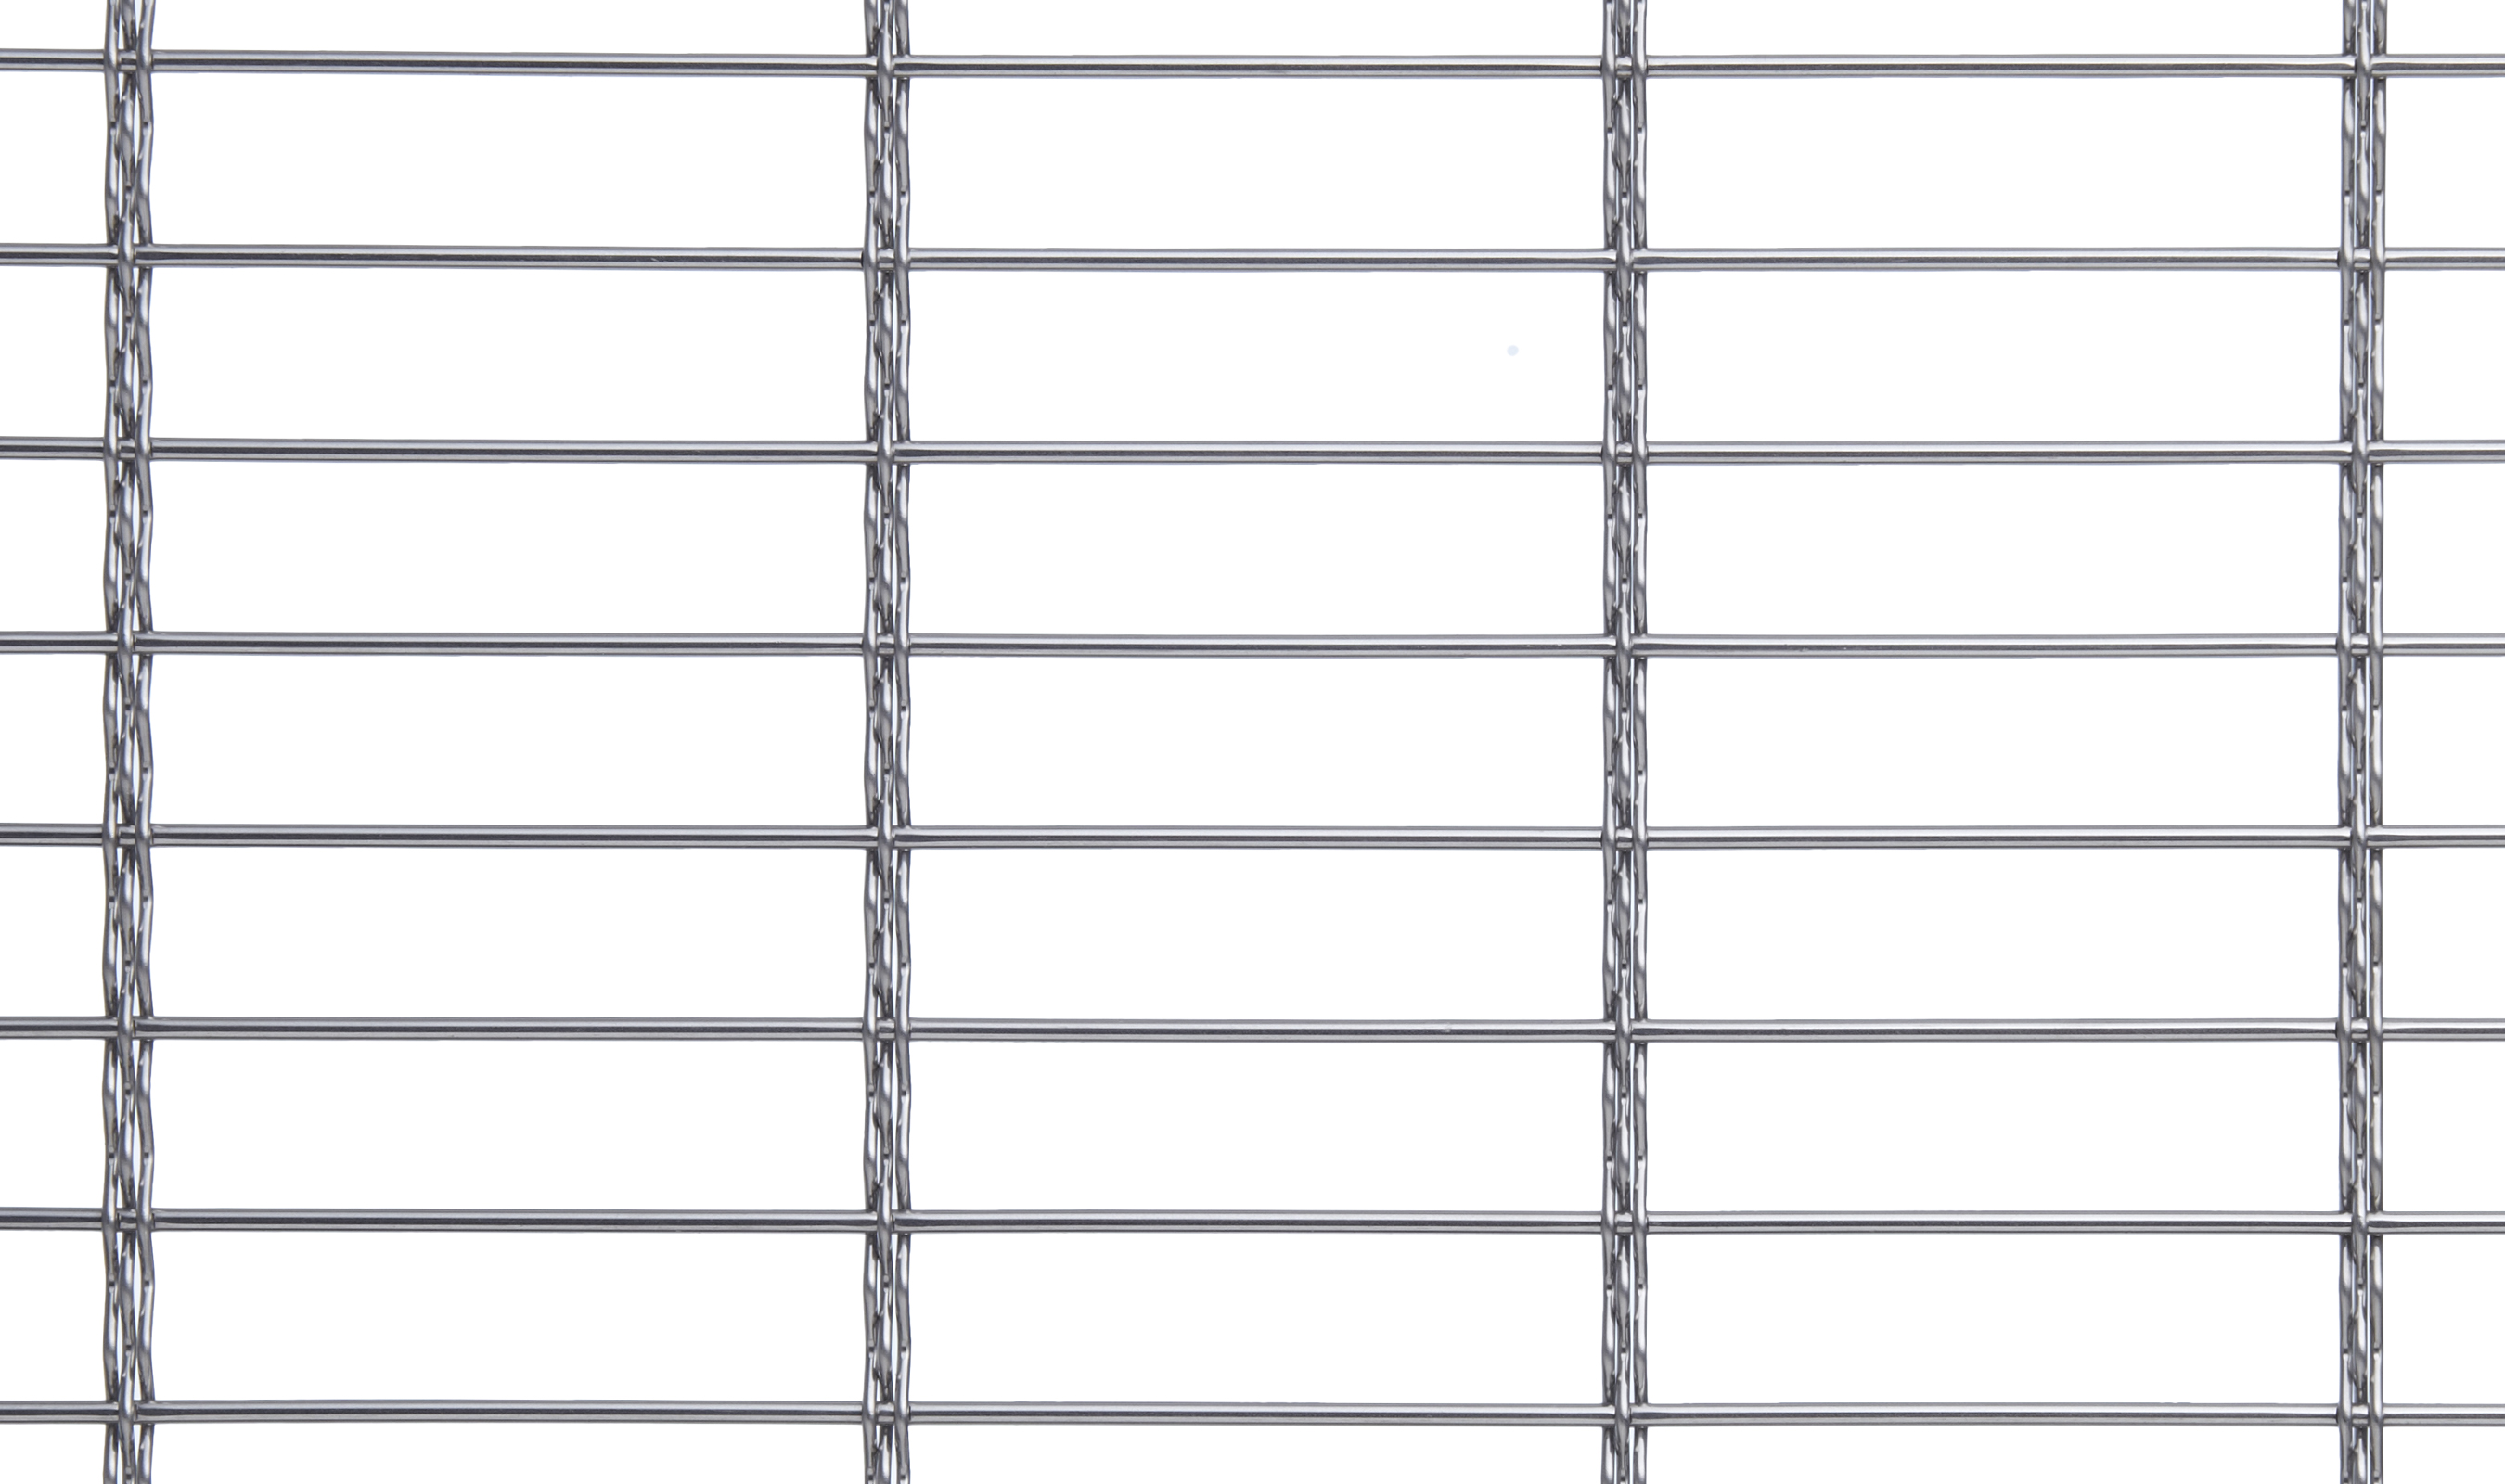 M13Z-321 architectural woven wire mesh pattern